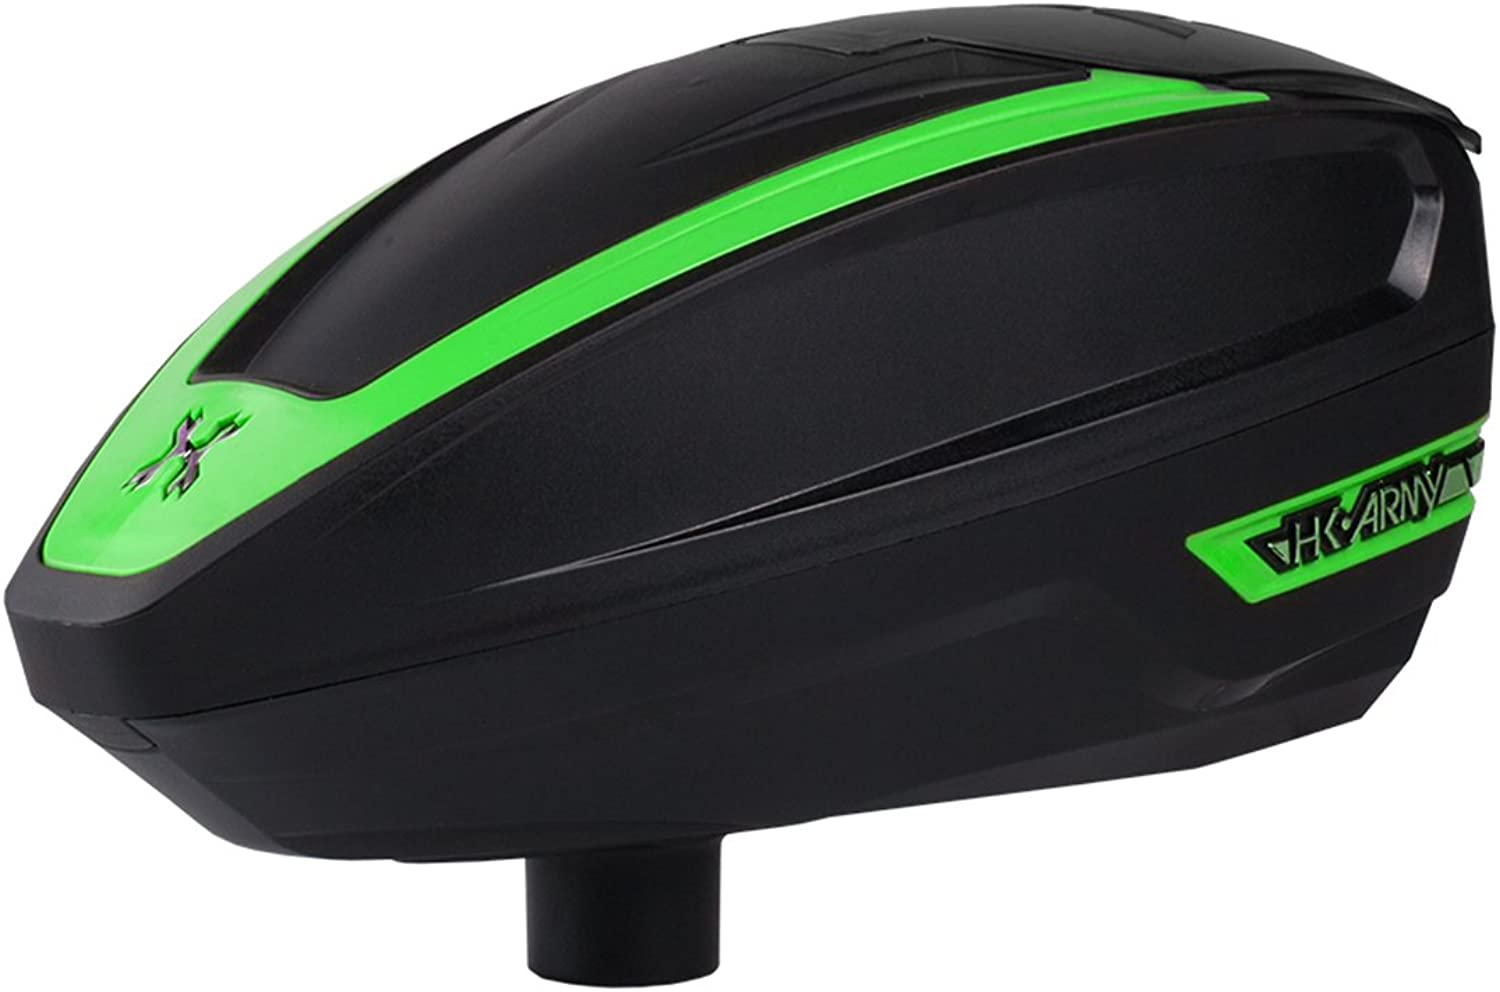 HK Army TFX Electronic Loader  Black   Neon Green